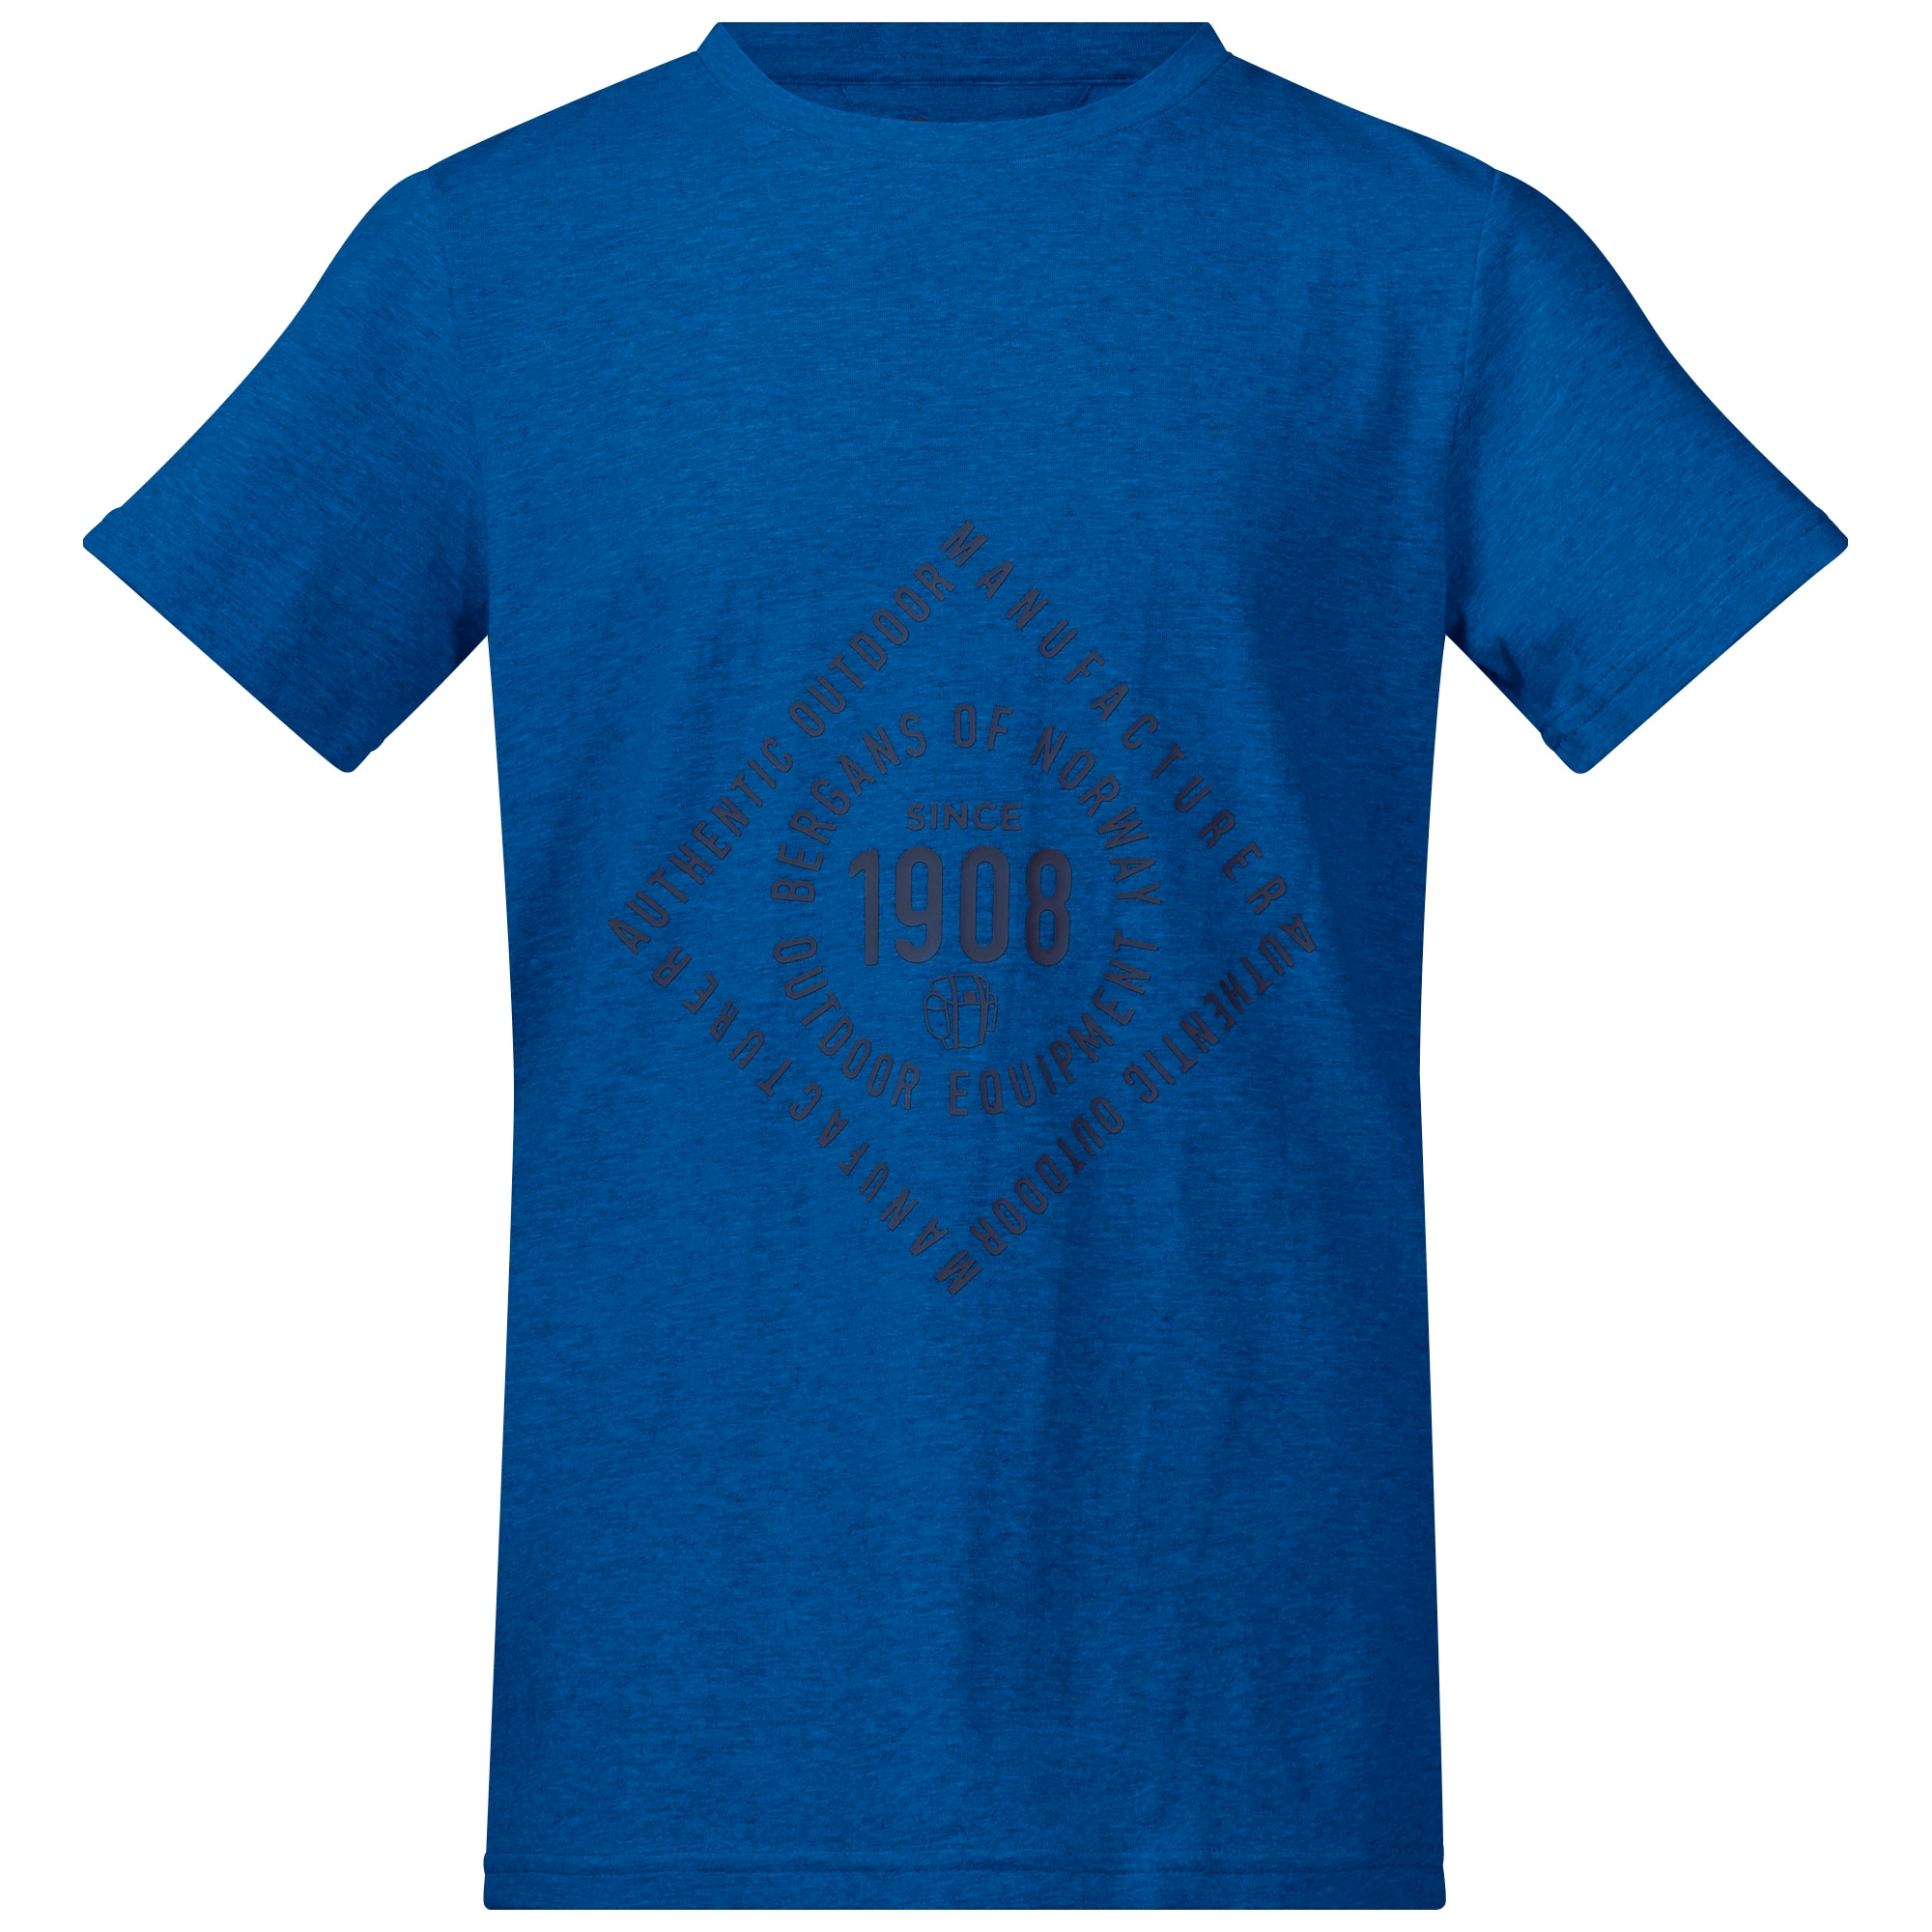 Bergans 1908 Youth Tee